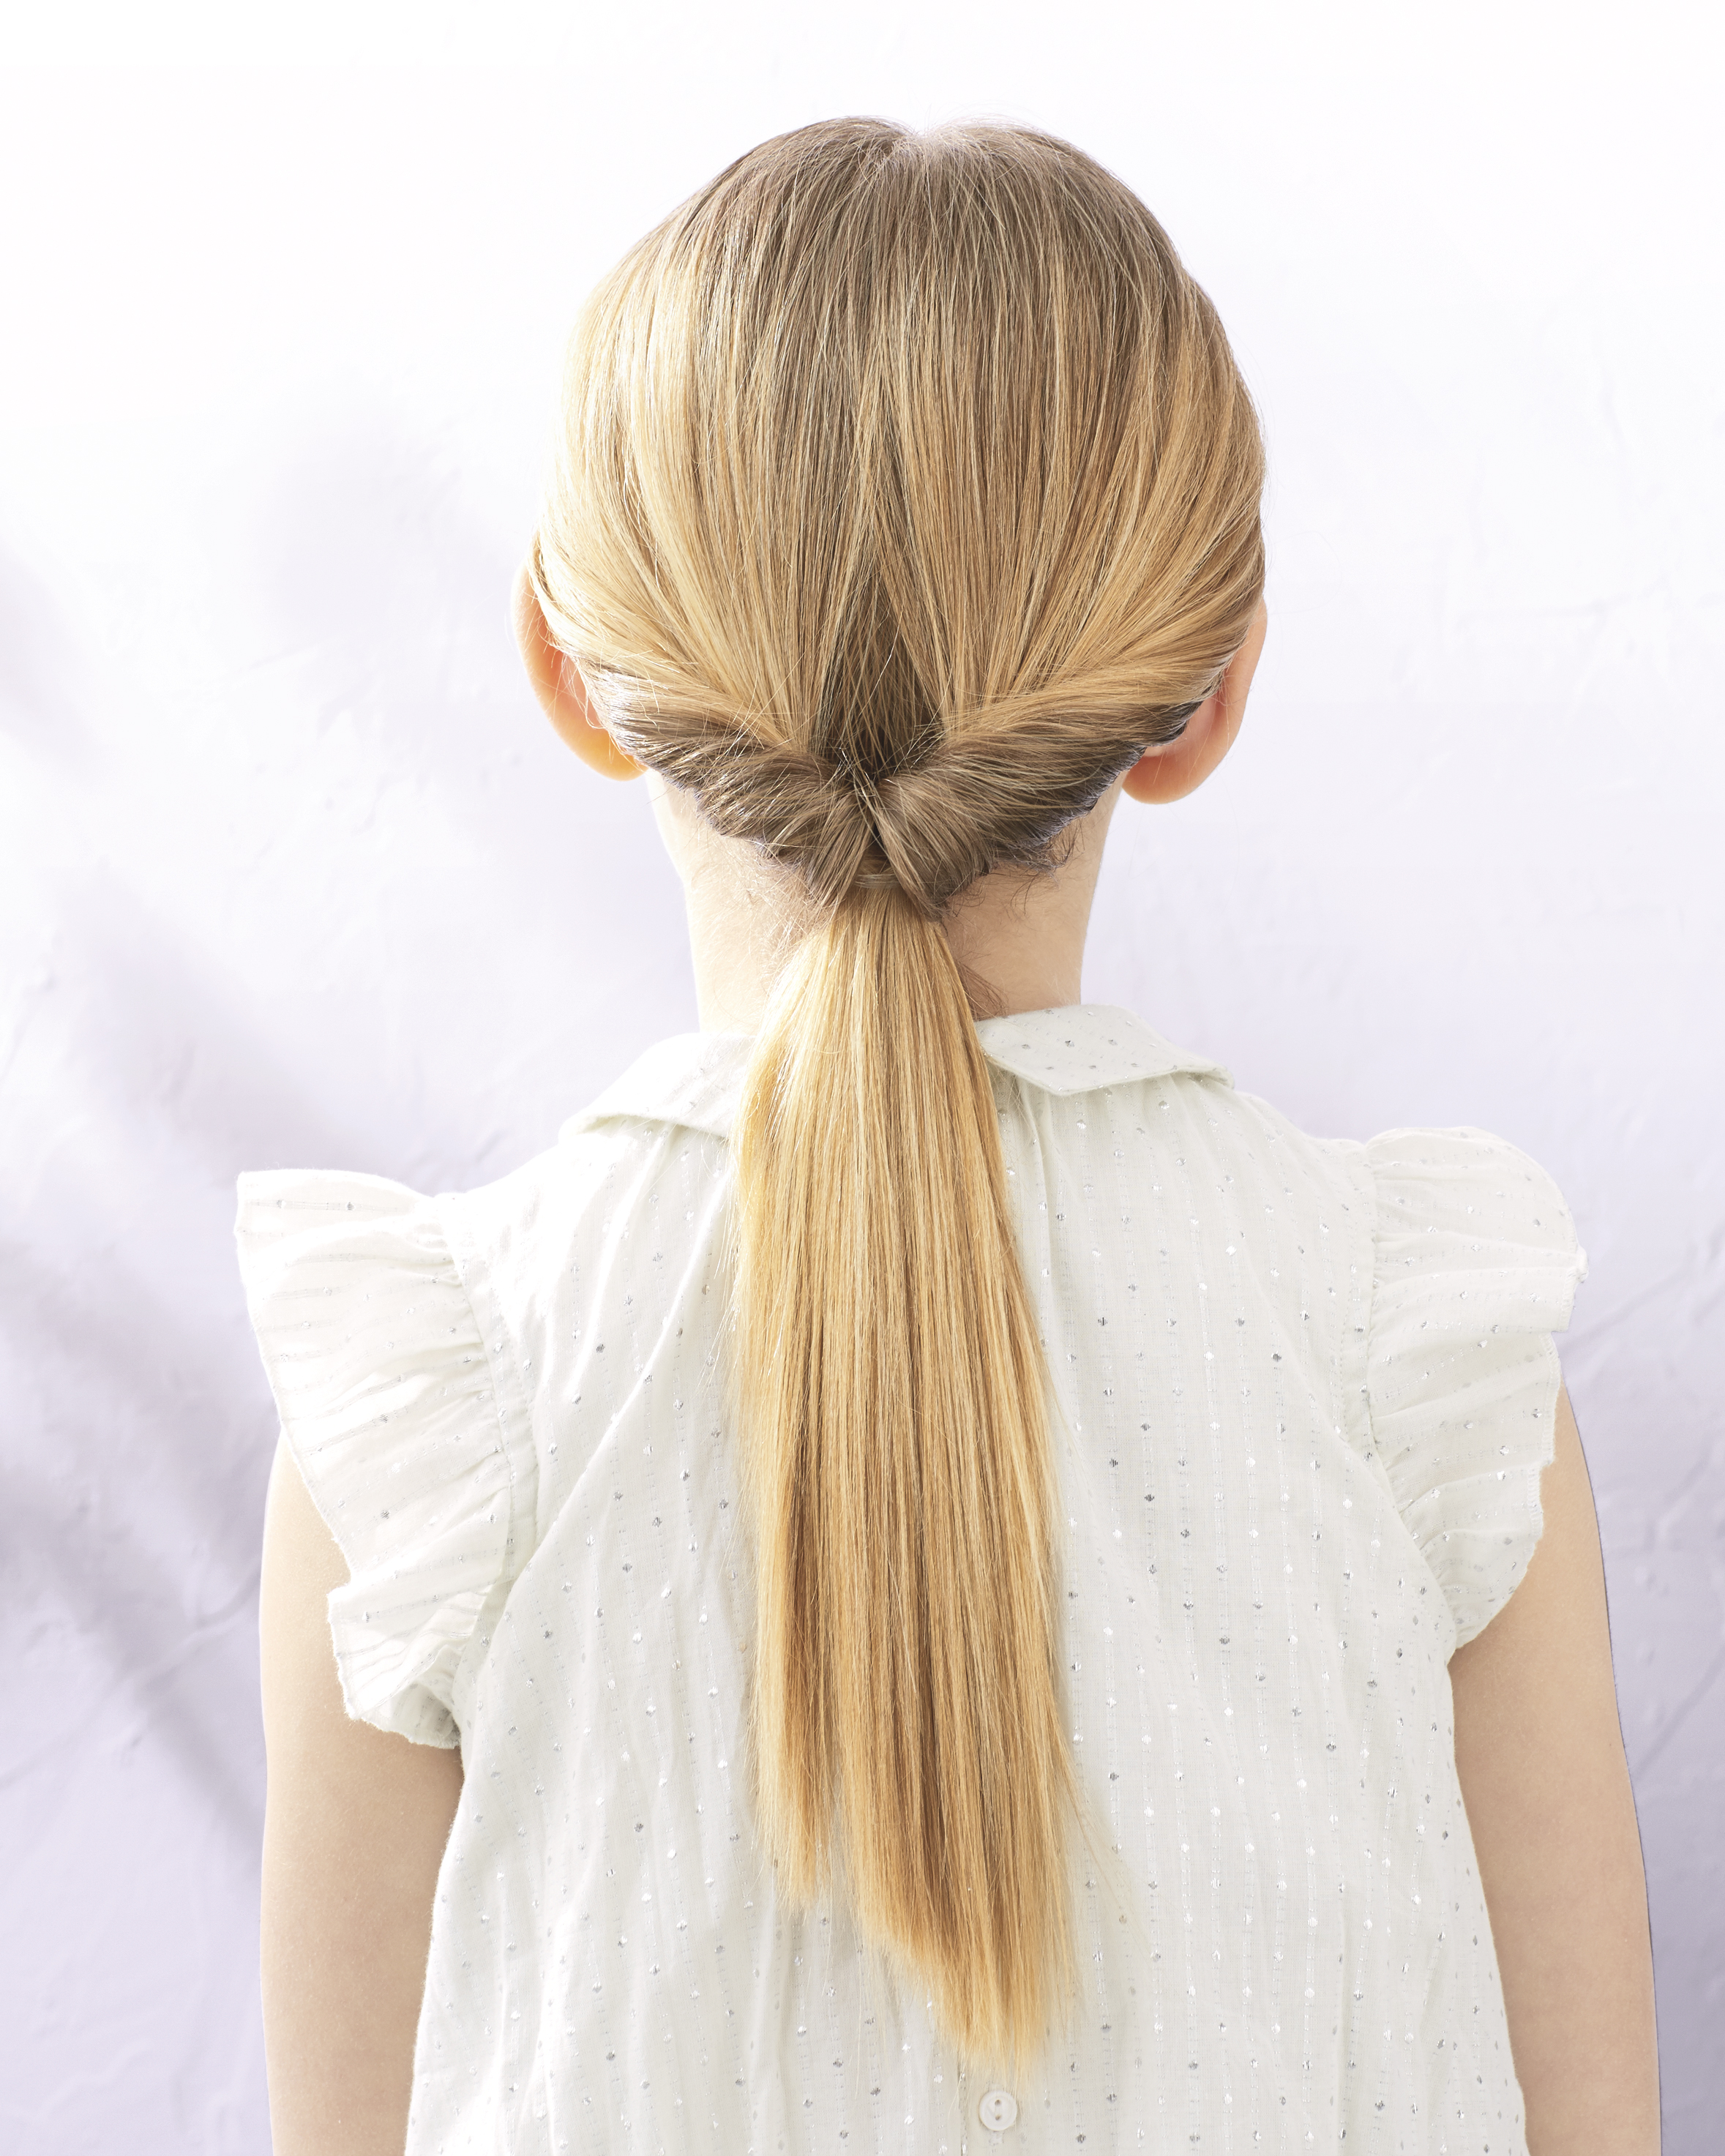 Flower Girl Hairstyles: Flower Girl Hairstyles That Are Cute And Comfy